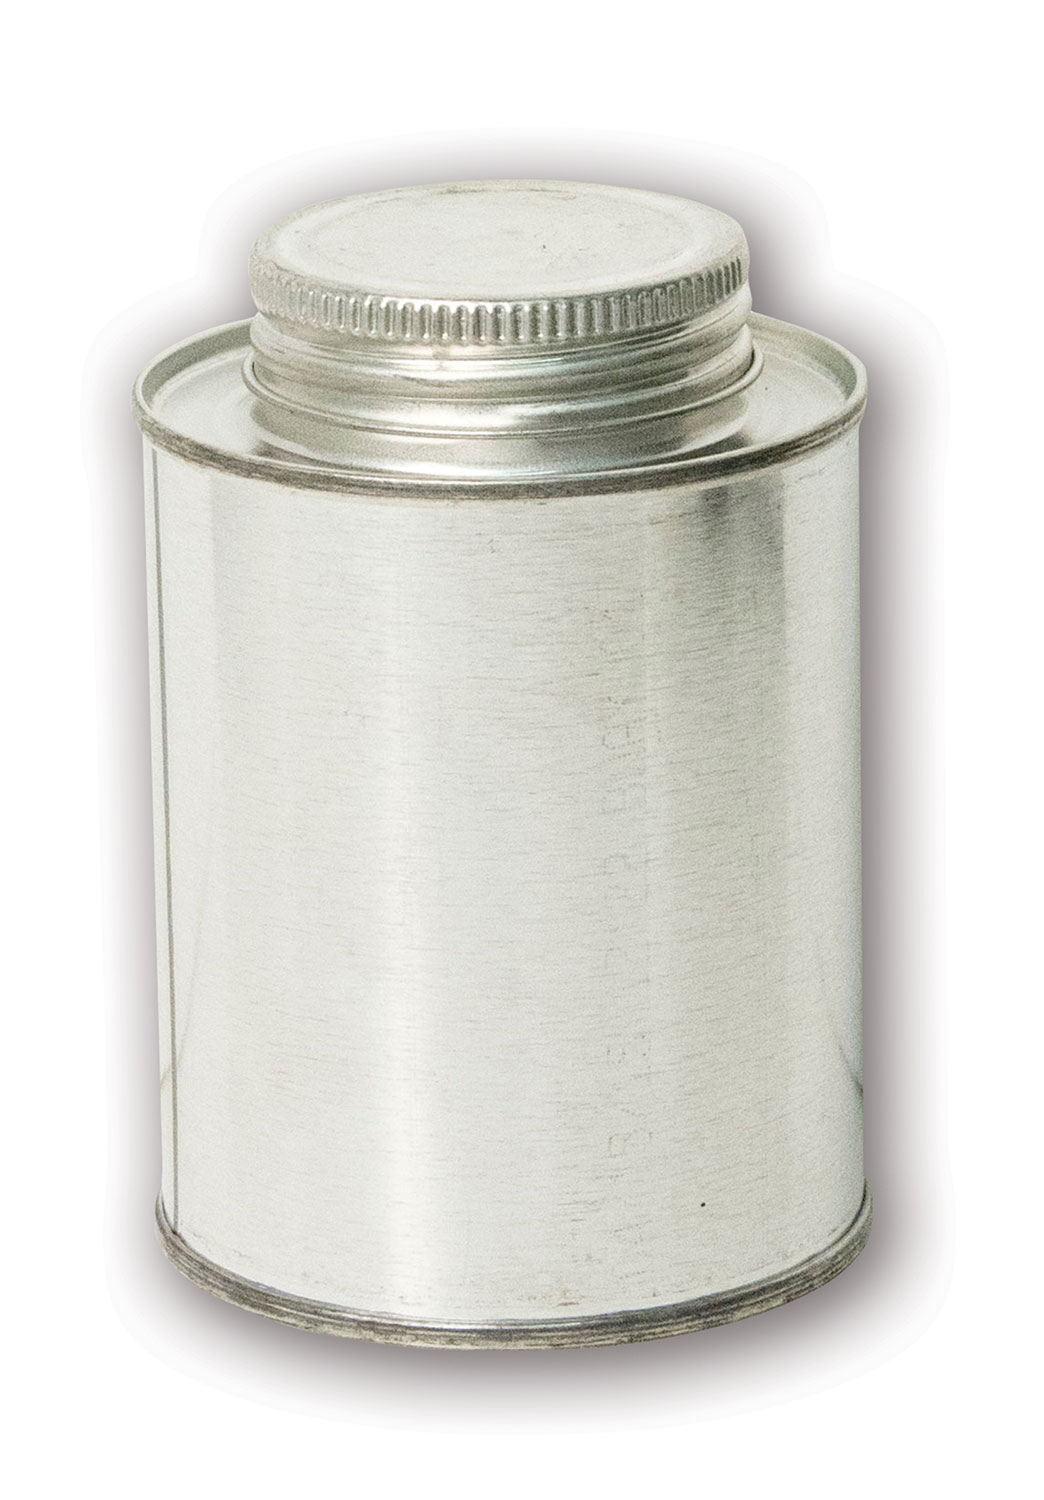 8 oz Metal Can#(stainless steel w/cap)#Item ACC2103